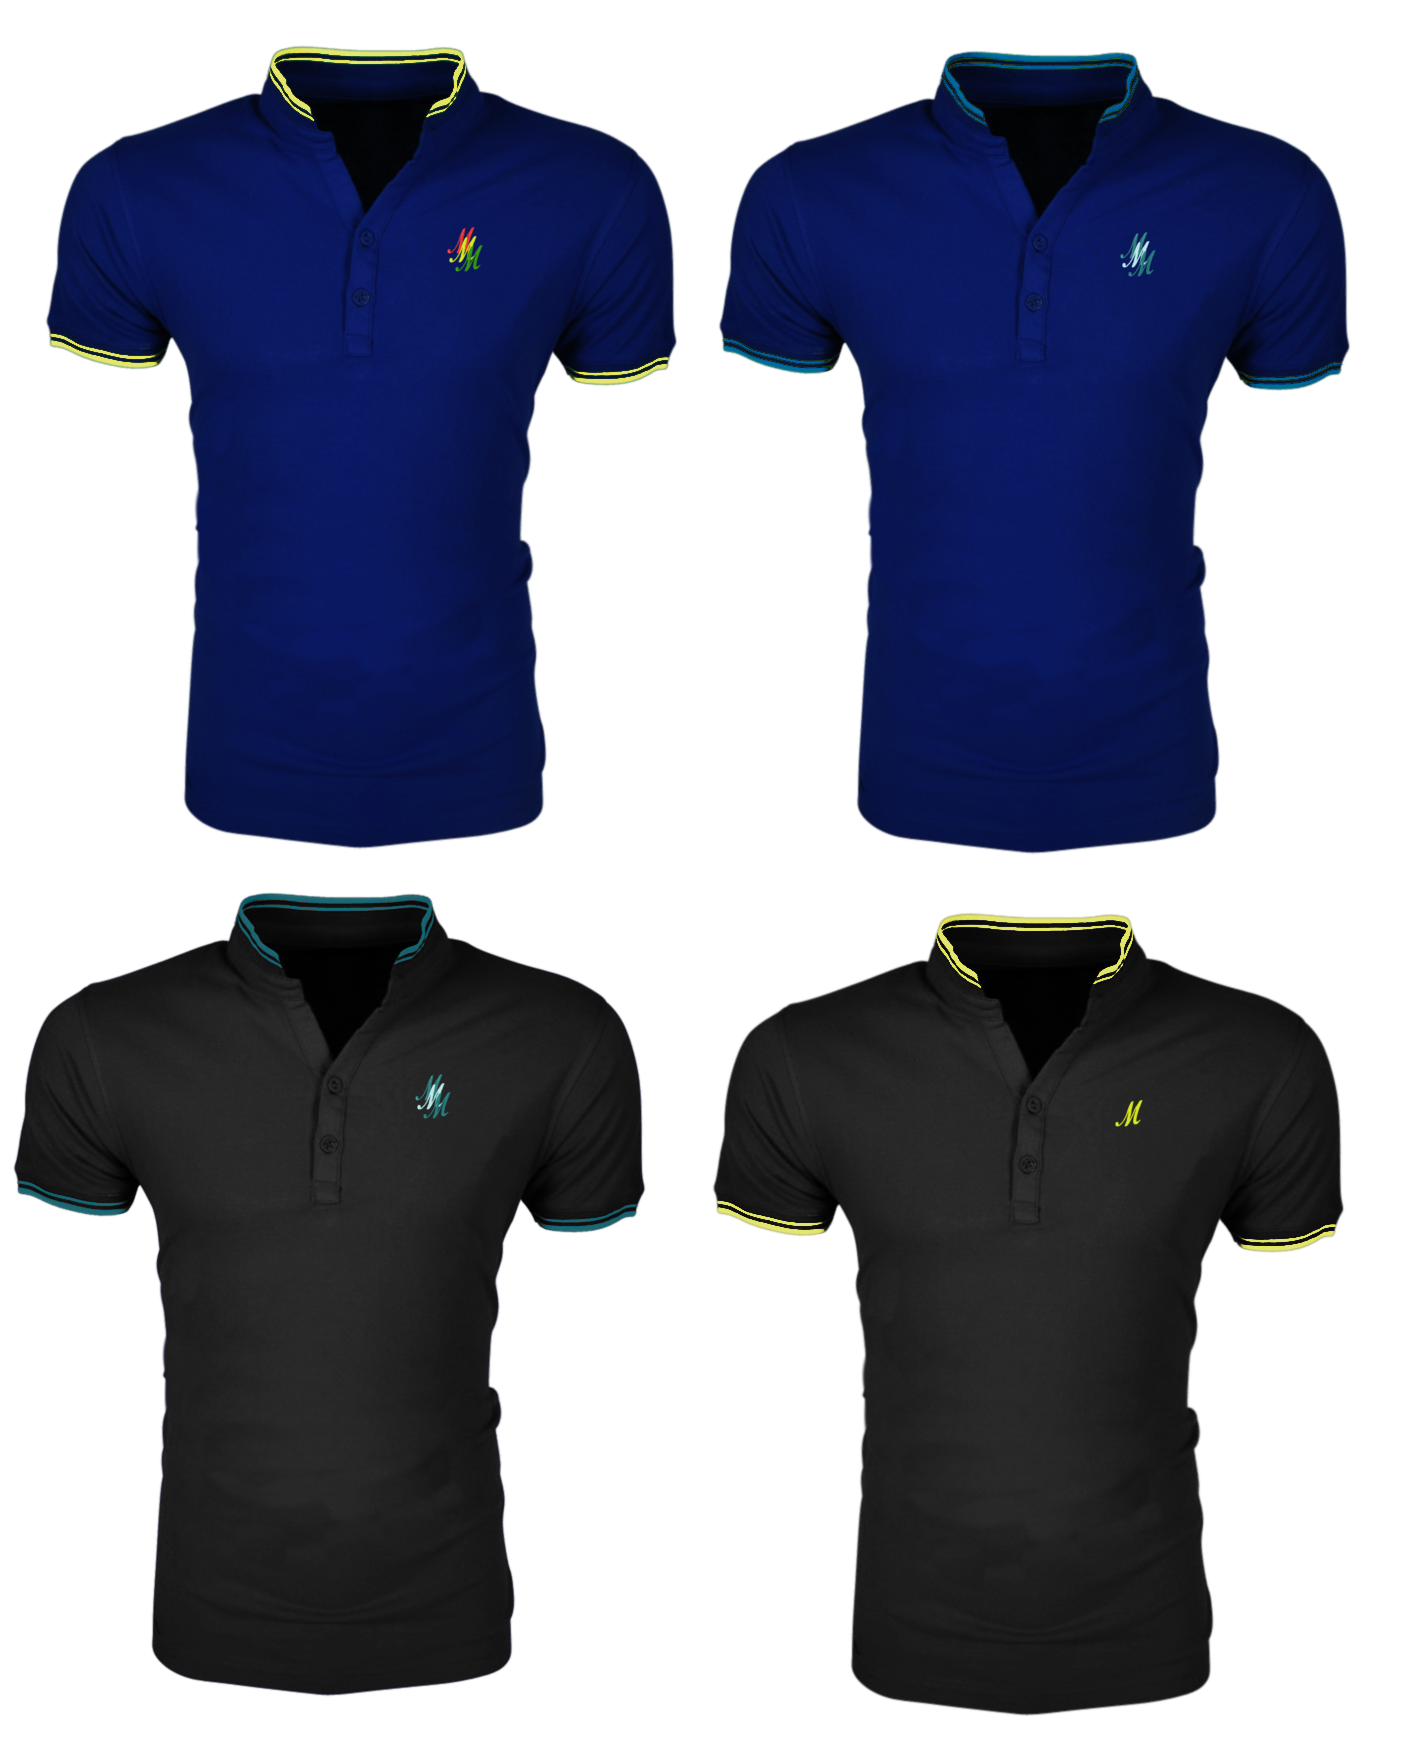 FABRICANTE DE POLOS CON DISEÑOS APORTADOS POR EL CLIENTE. Ofrecemos un  servicio integral en fabricación de ropa para terceros. d440dc8c46b42